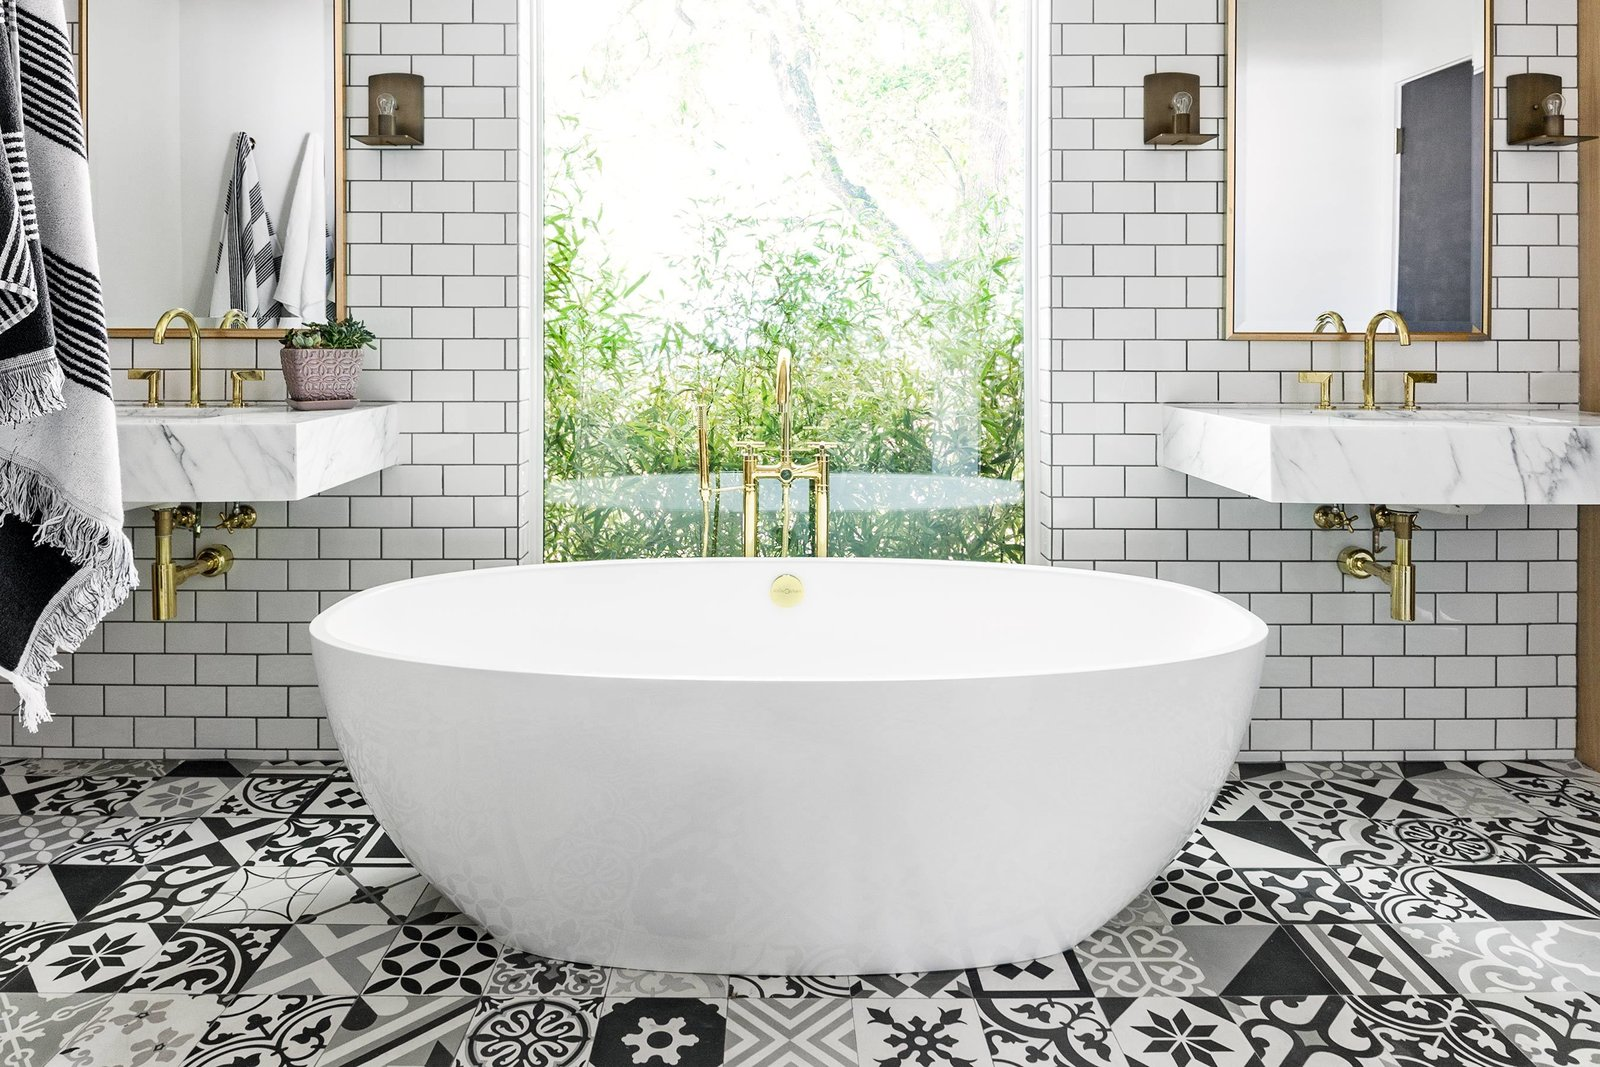 Bath Room, Subway Tile Wall, and Ceramic Tile Floor  Best Photos from interiors